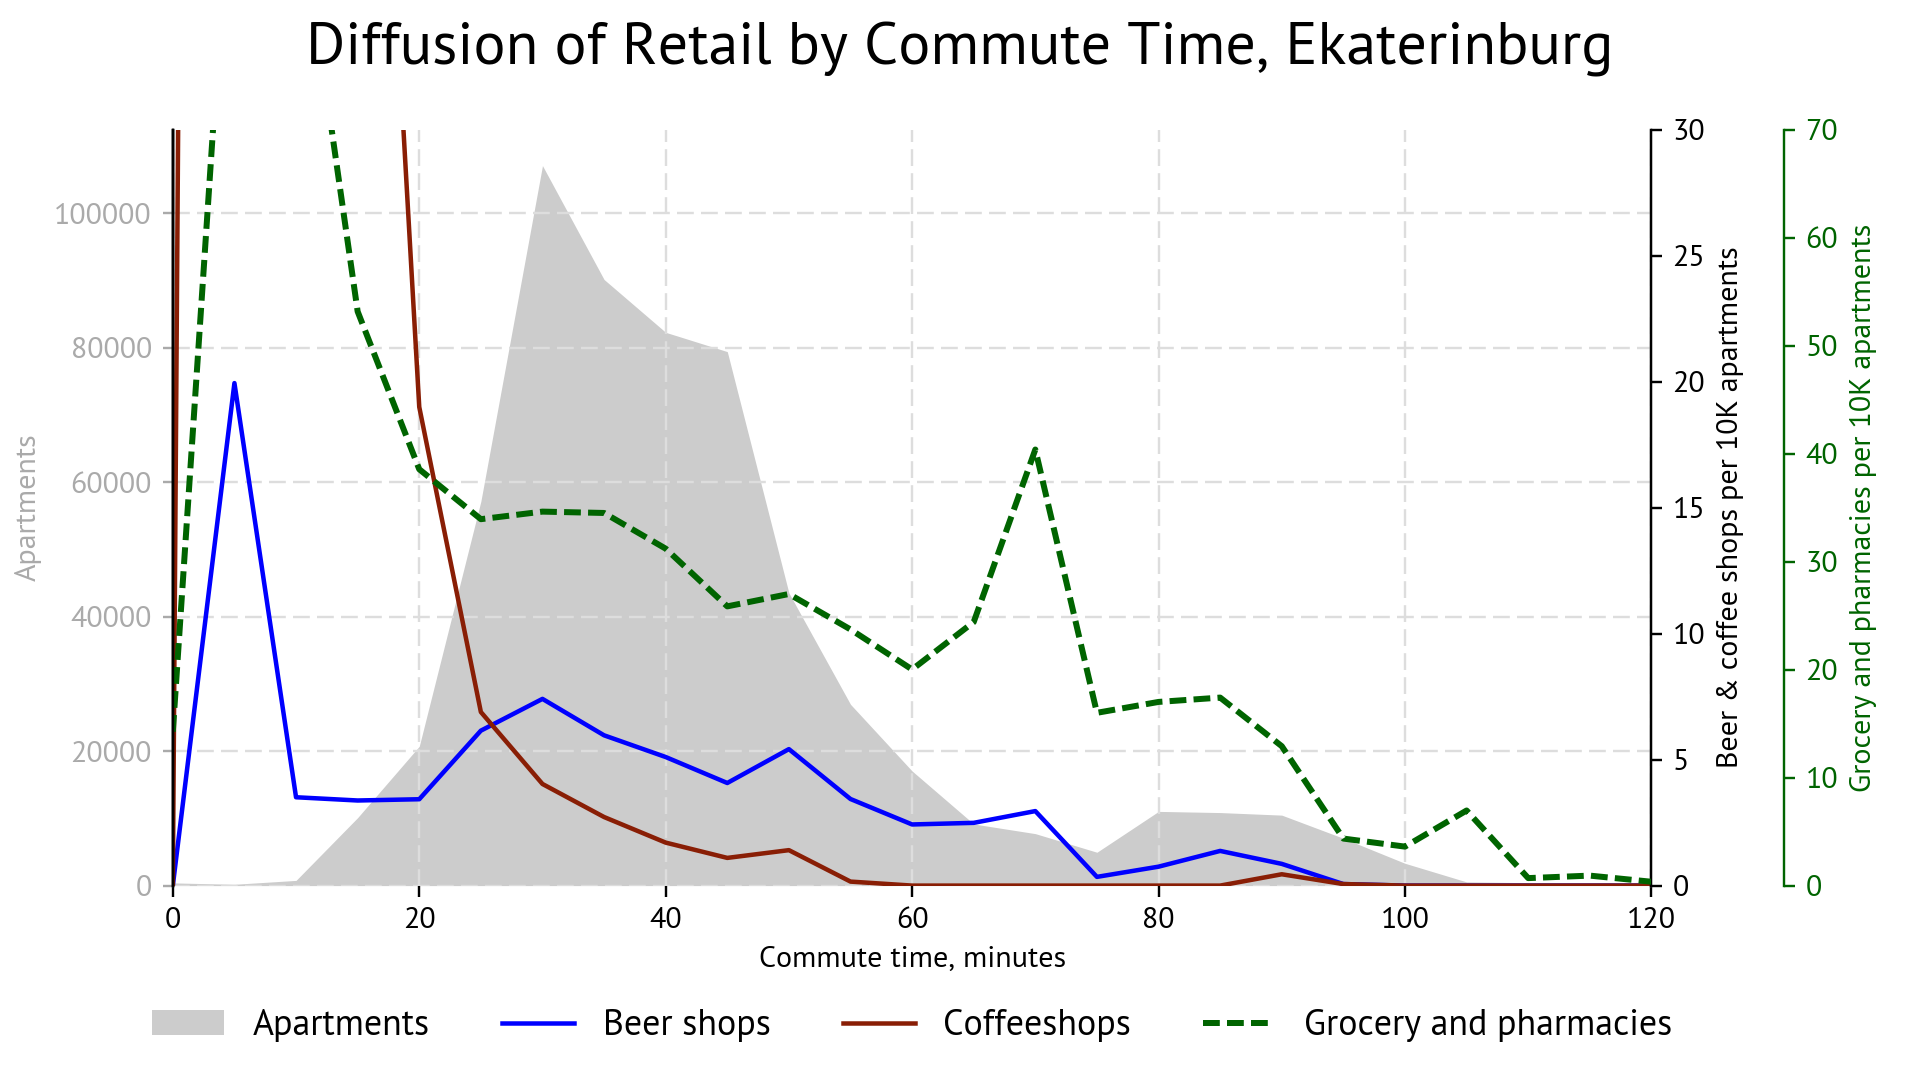 Chart: retail diffusion depending on commute time, Ekaterinburg